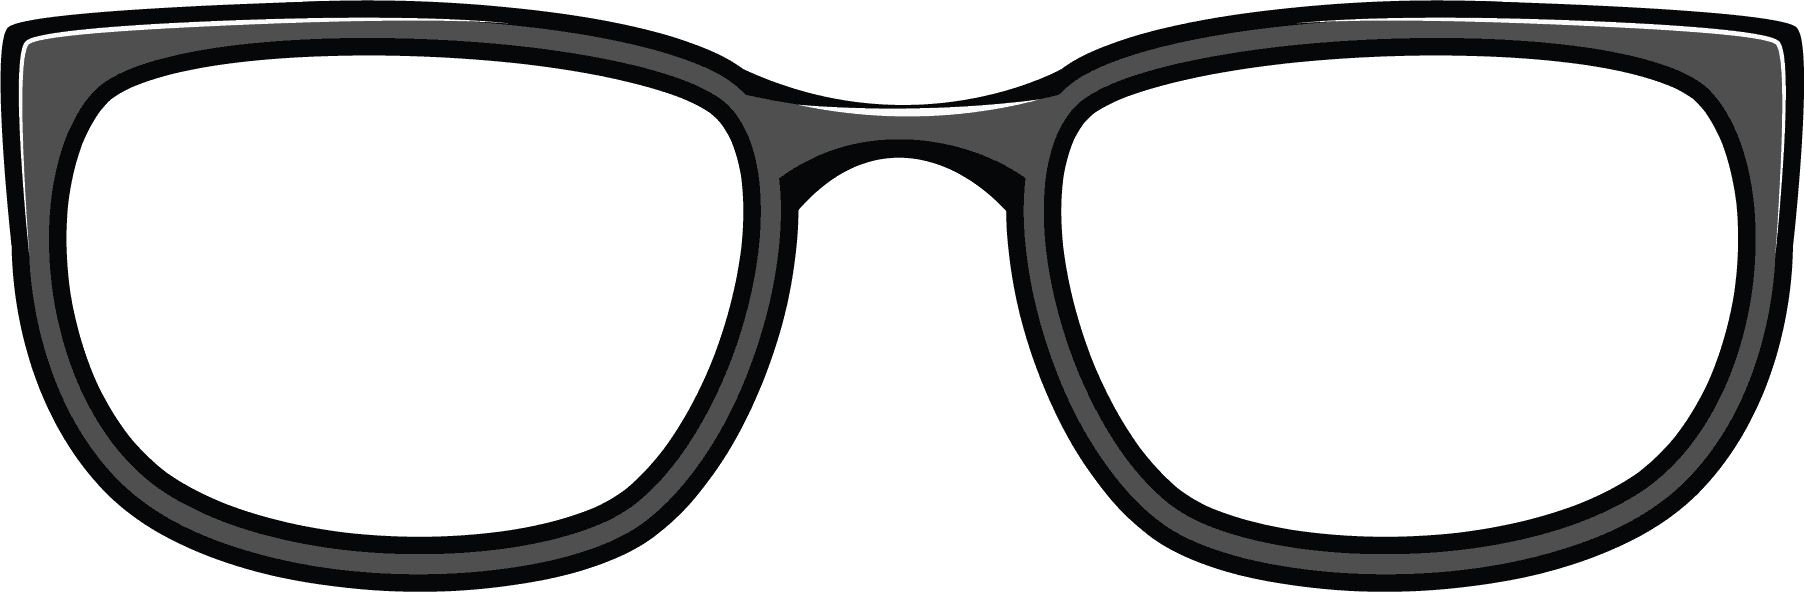 Eyes With Glasses Cartoon | Clipart Panda - Free Clipart ...